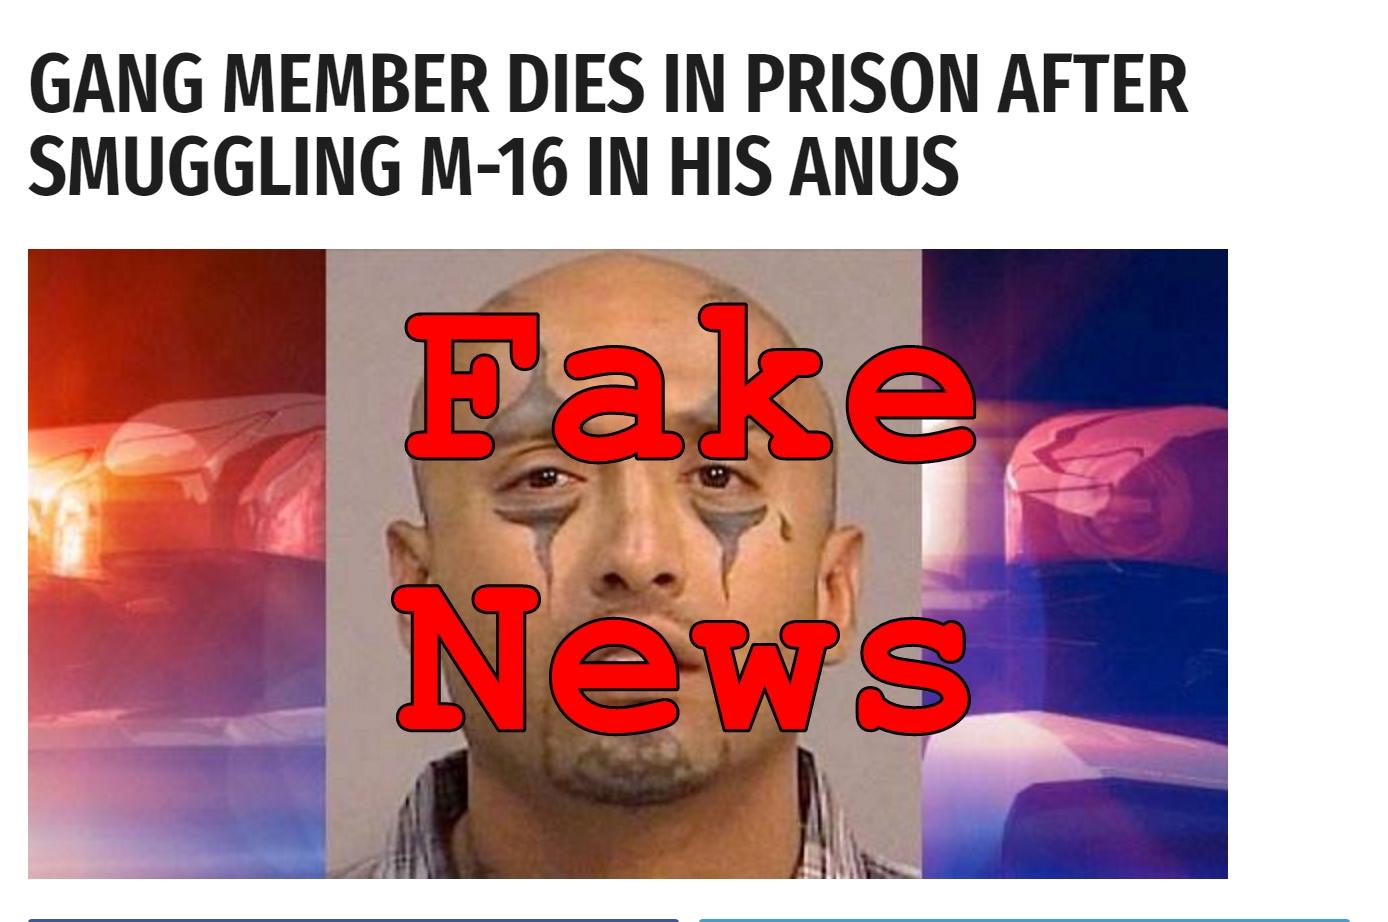 Fake News: Gang Member Did NOT Die in Prison After Smuggling M-16 in His Anus